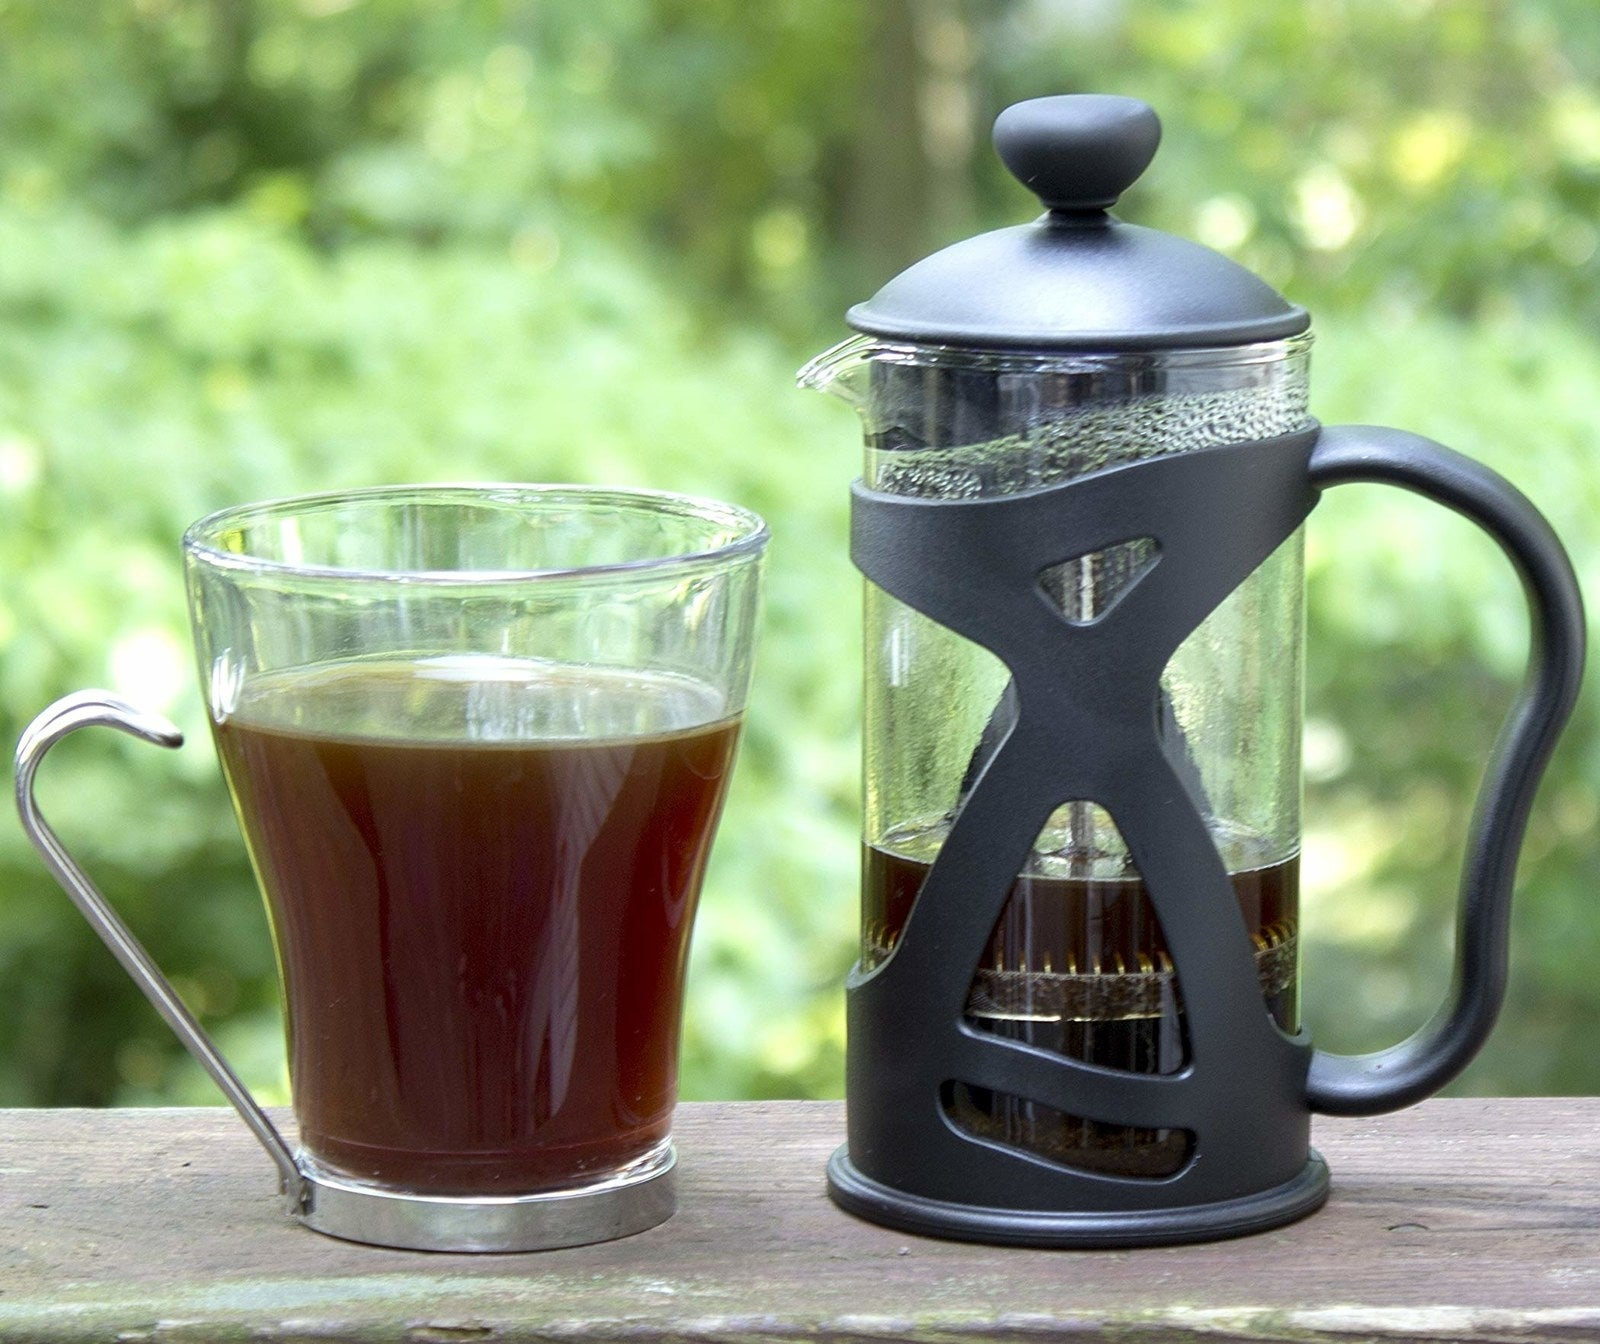 used black french press next to a clear mug of black coffee